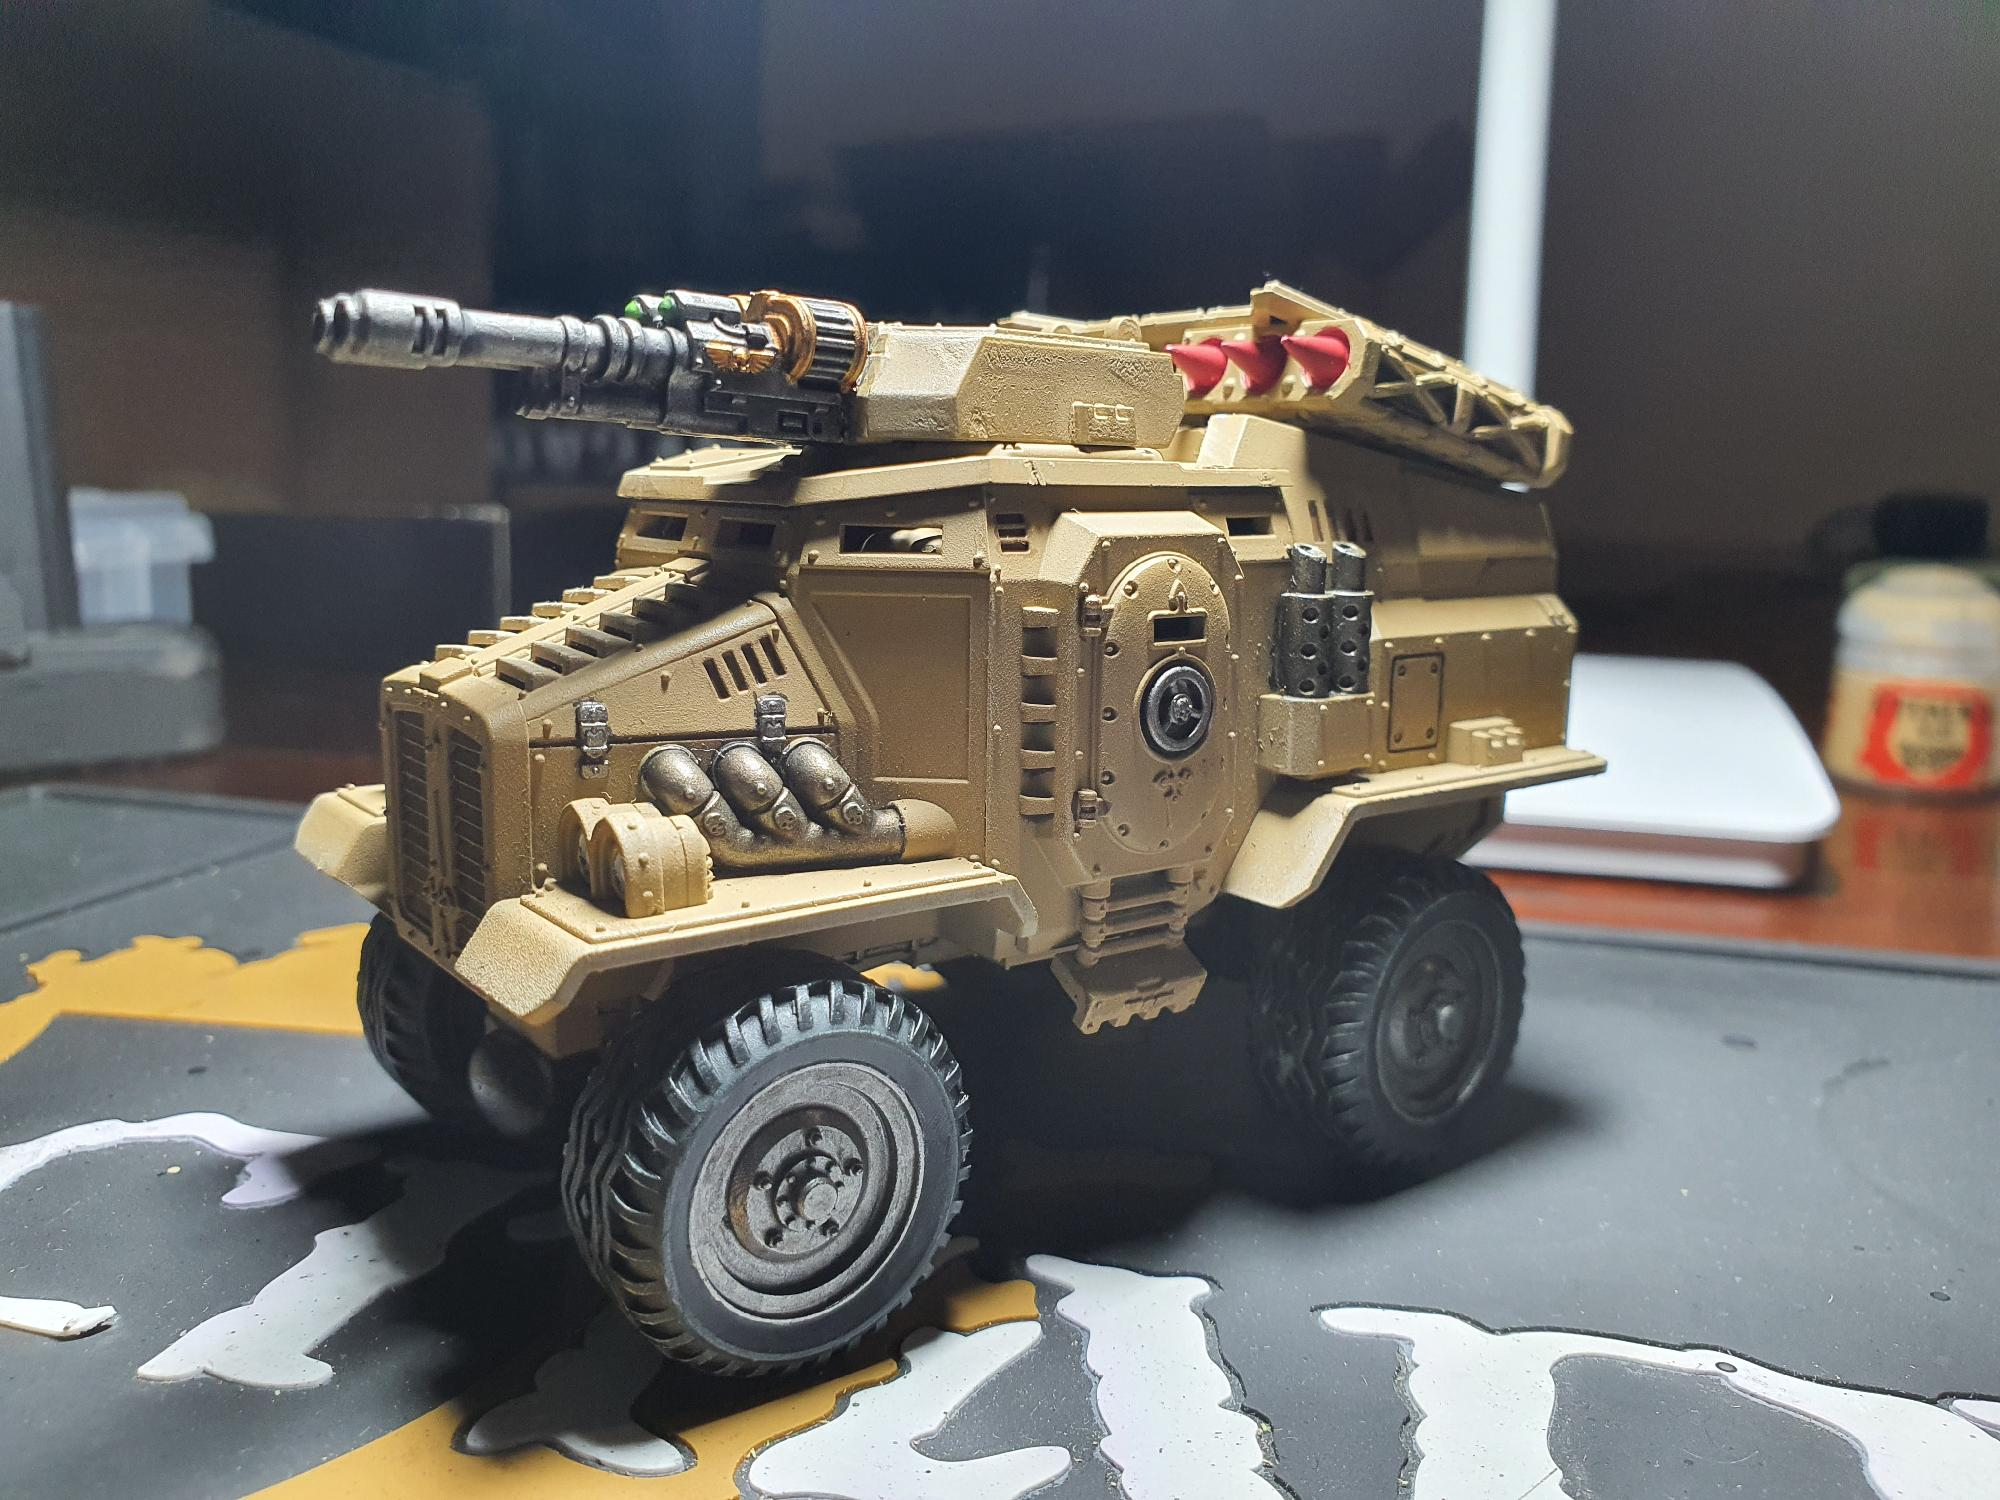 First completed Taurox for the R.V.I.O.R